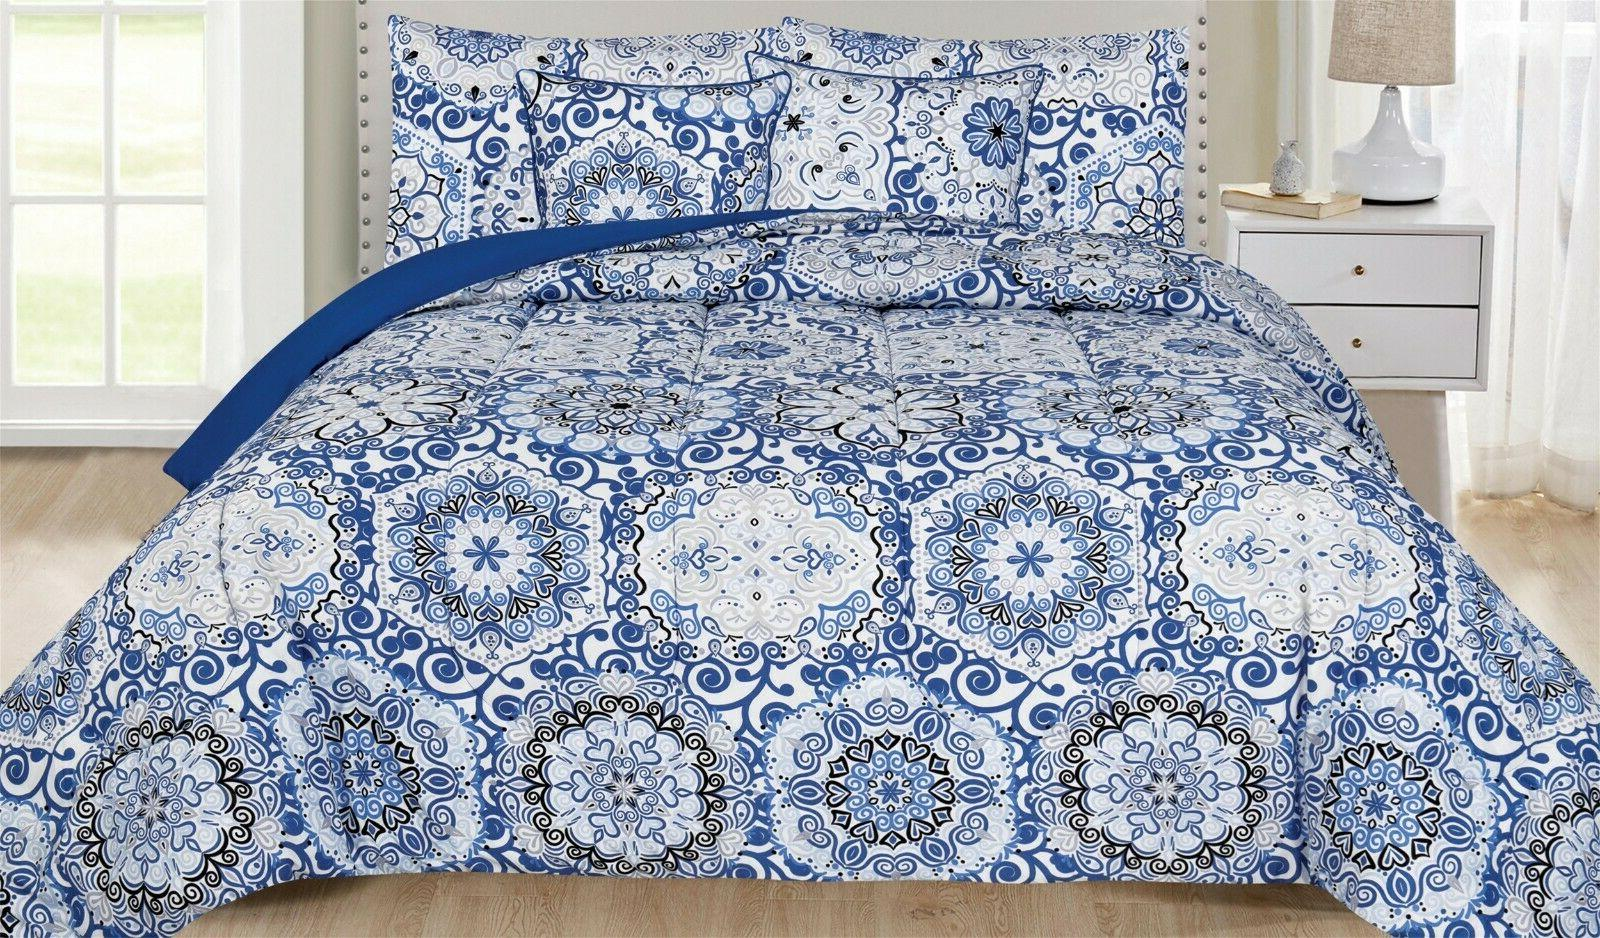 Ultra Soft Reversible Comforter Hypoallergenic Printed